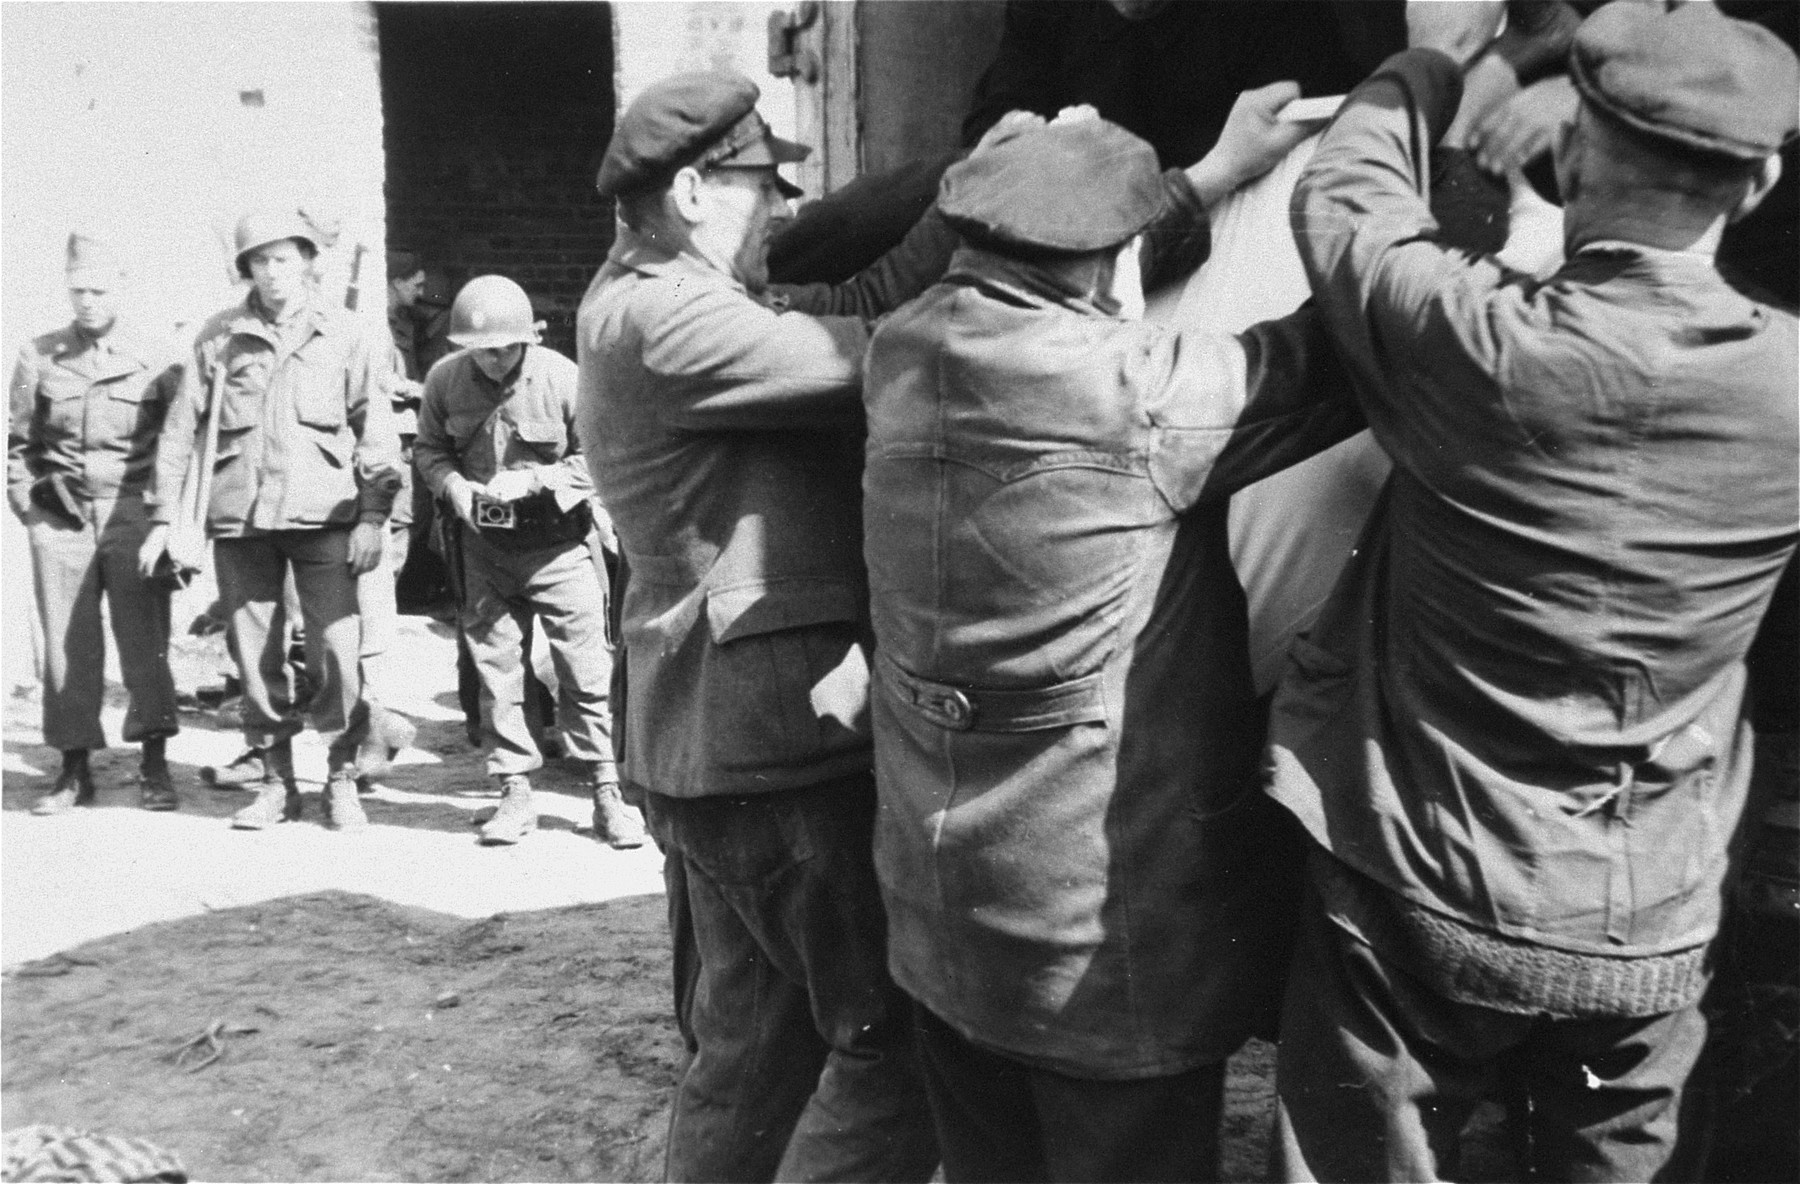 German civilians from the nearby town of Ludwigslust are made to clear corpses from barracks in the Woebbelin concentration camp.